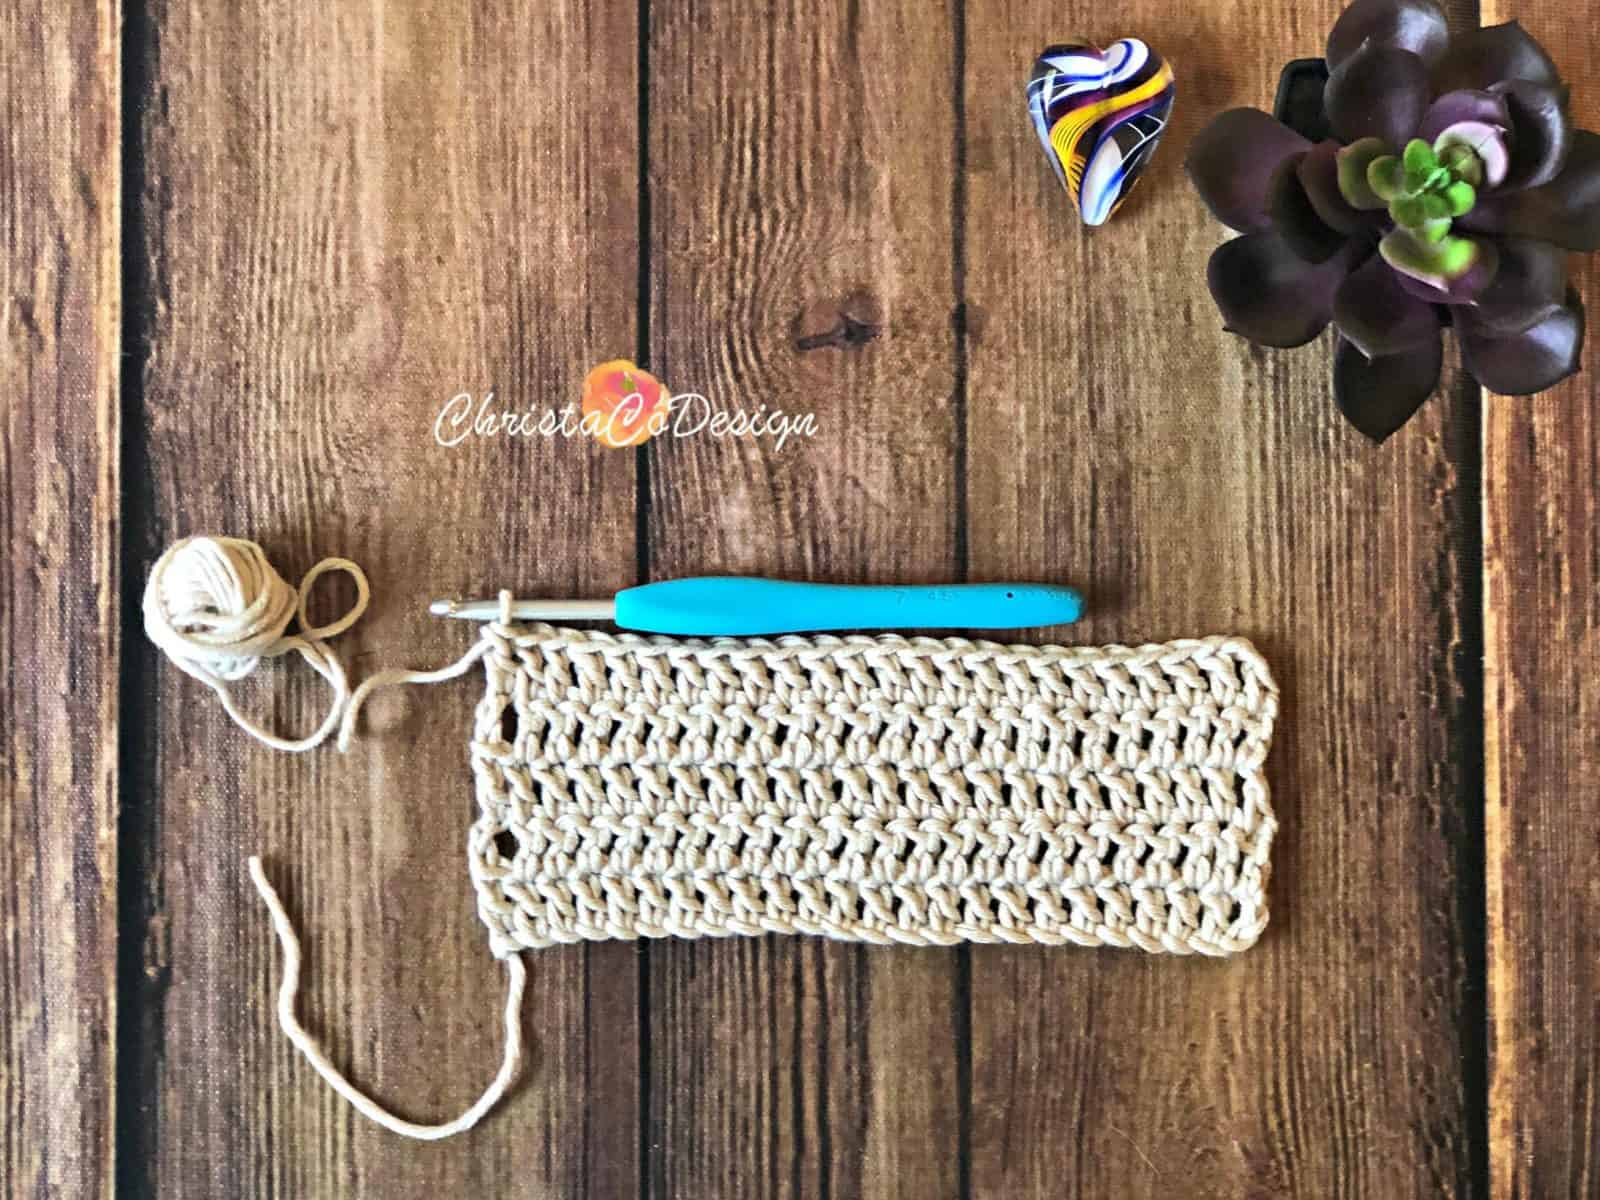 Crochet Standing Stitches Photo Tutorial